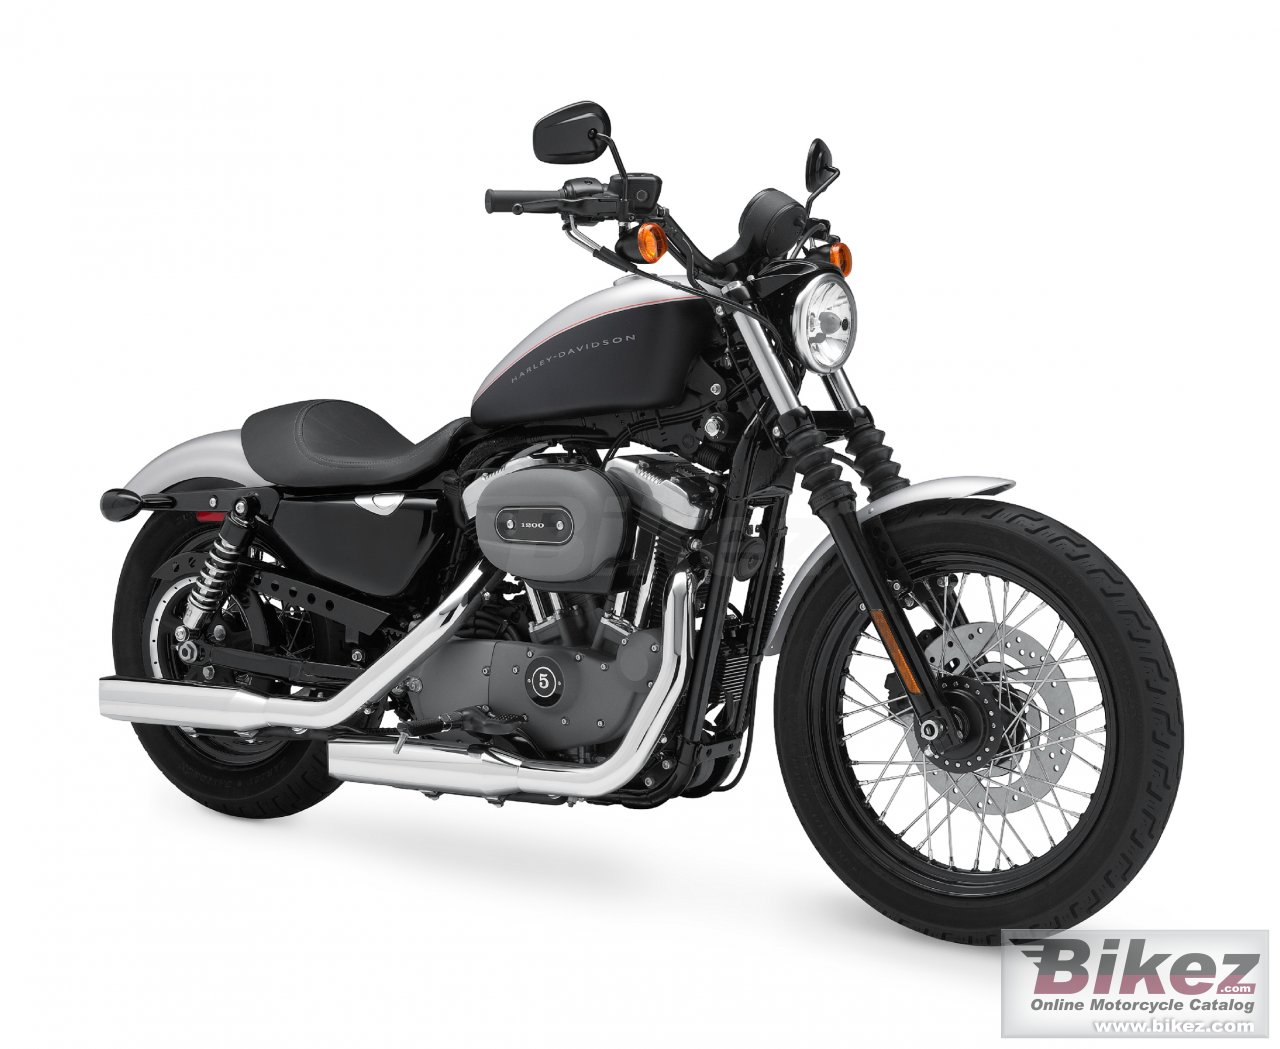 Big Harley-Davidson xl 1200n sportster 1200 nightster picture and wallpaper from Bikez.com